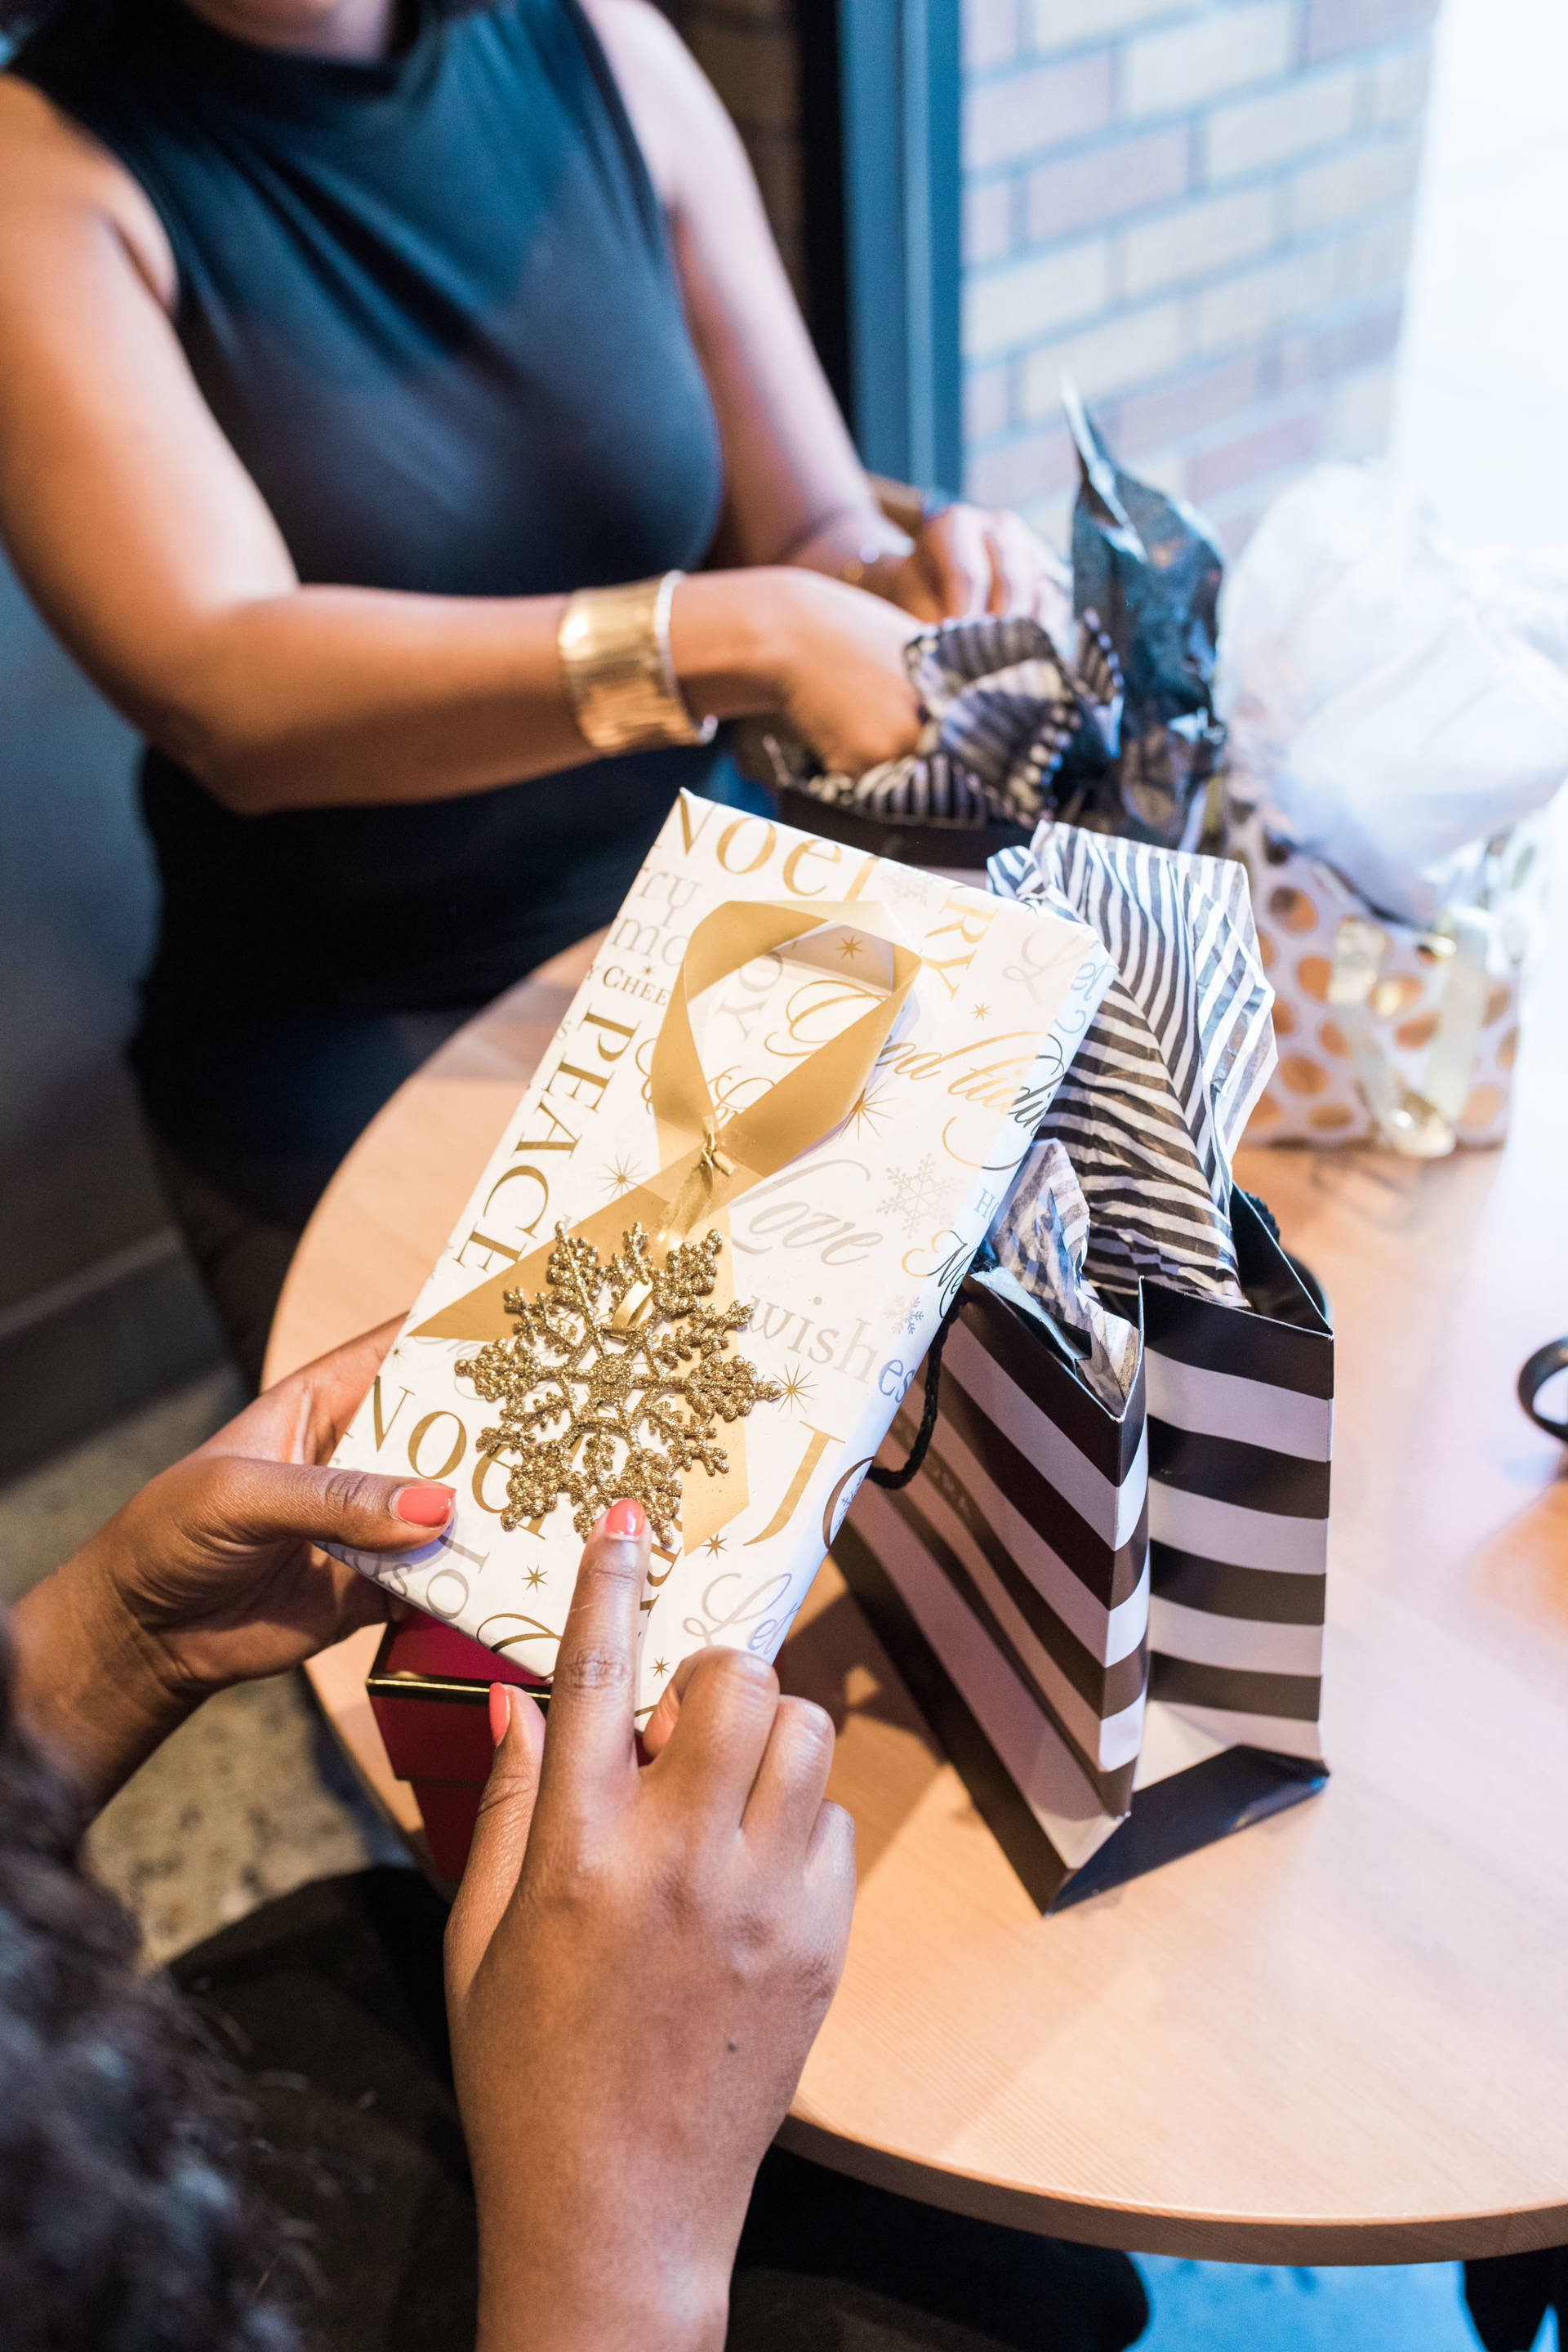 Coffee, gifts and friendship! It doesn't get better than that! I was so excited for our first annual gift exchange with my girls! We had a blast!